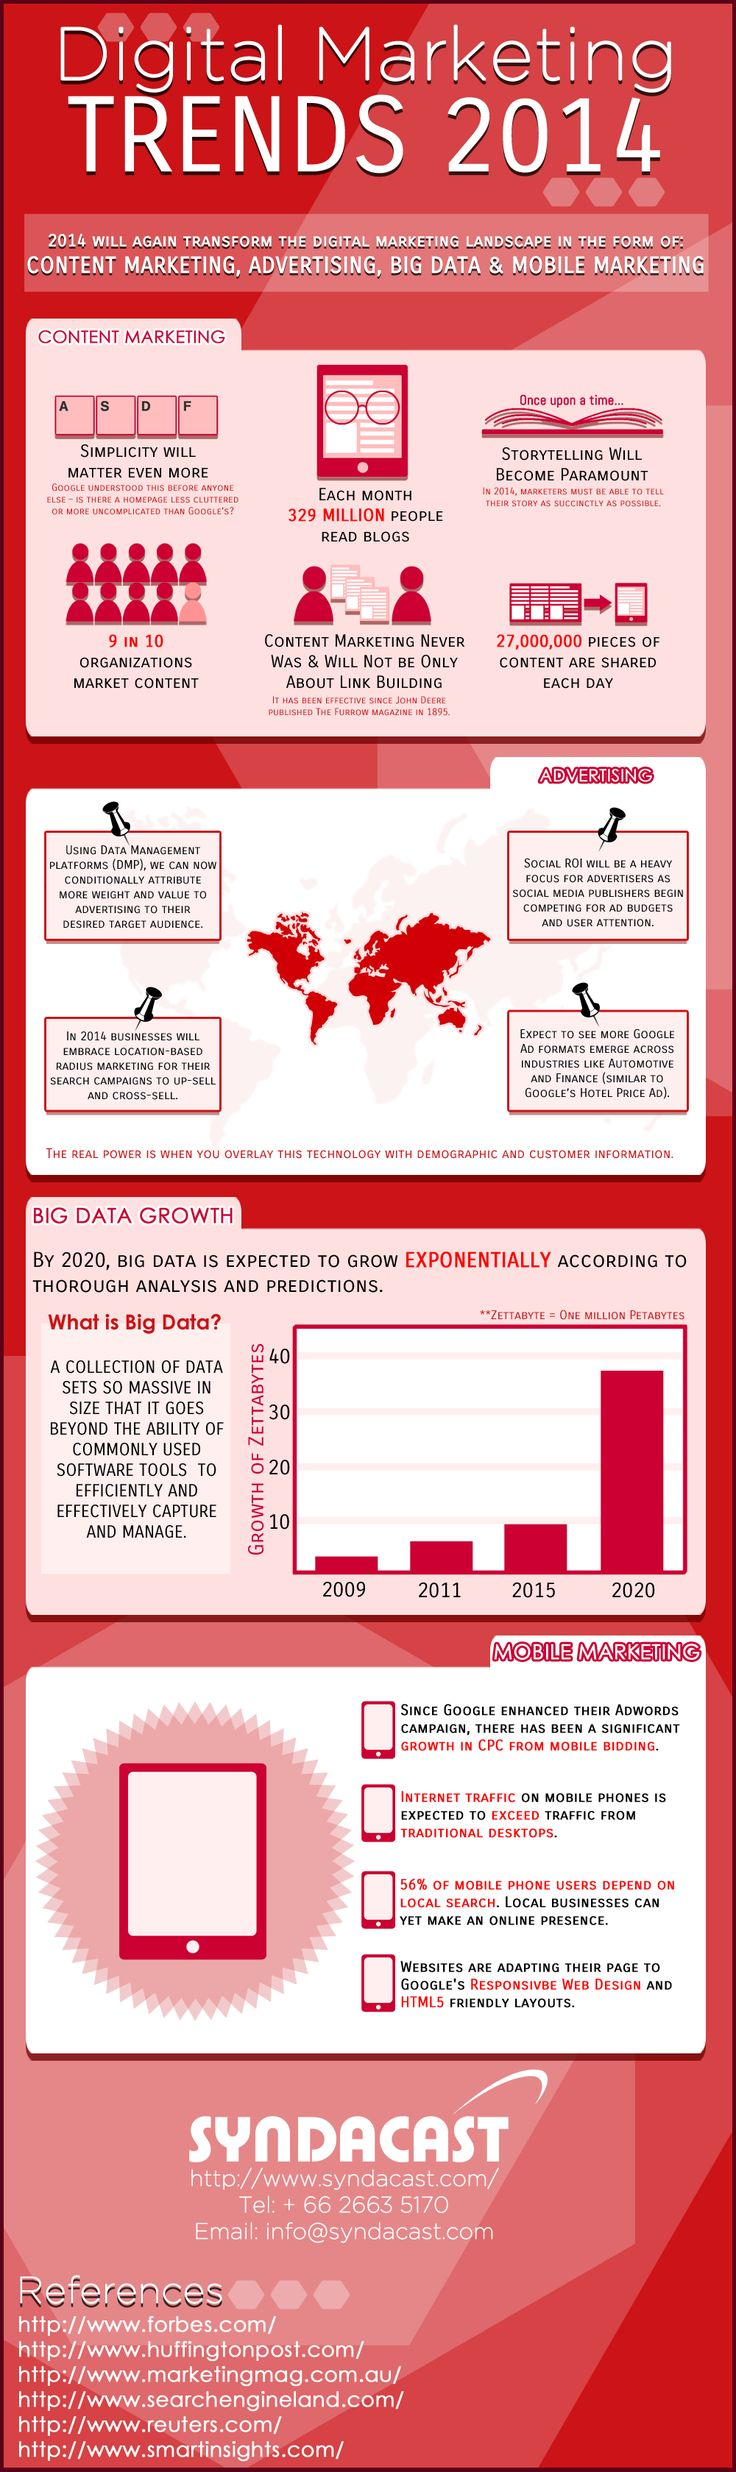 Content Marketing, Advertising And Mobile Marketing #Trends 2014 #infographic #digitalmarketing